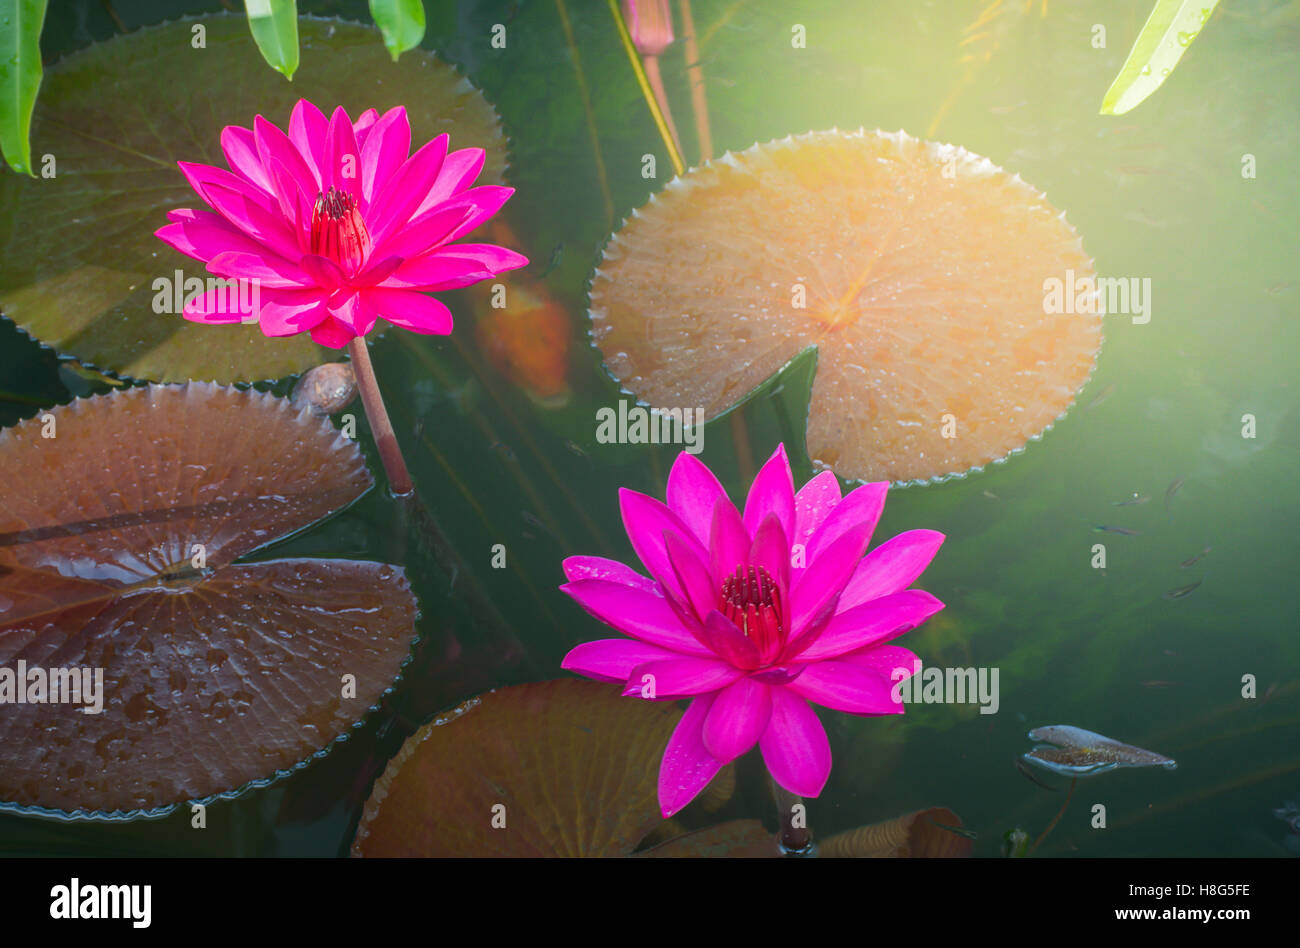 Close Up Photo Of Bright Pink Colour Twin Lotus Blossom Or Water